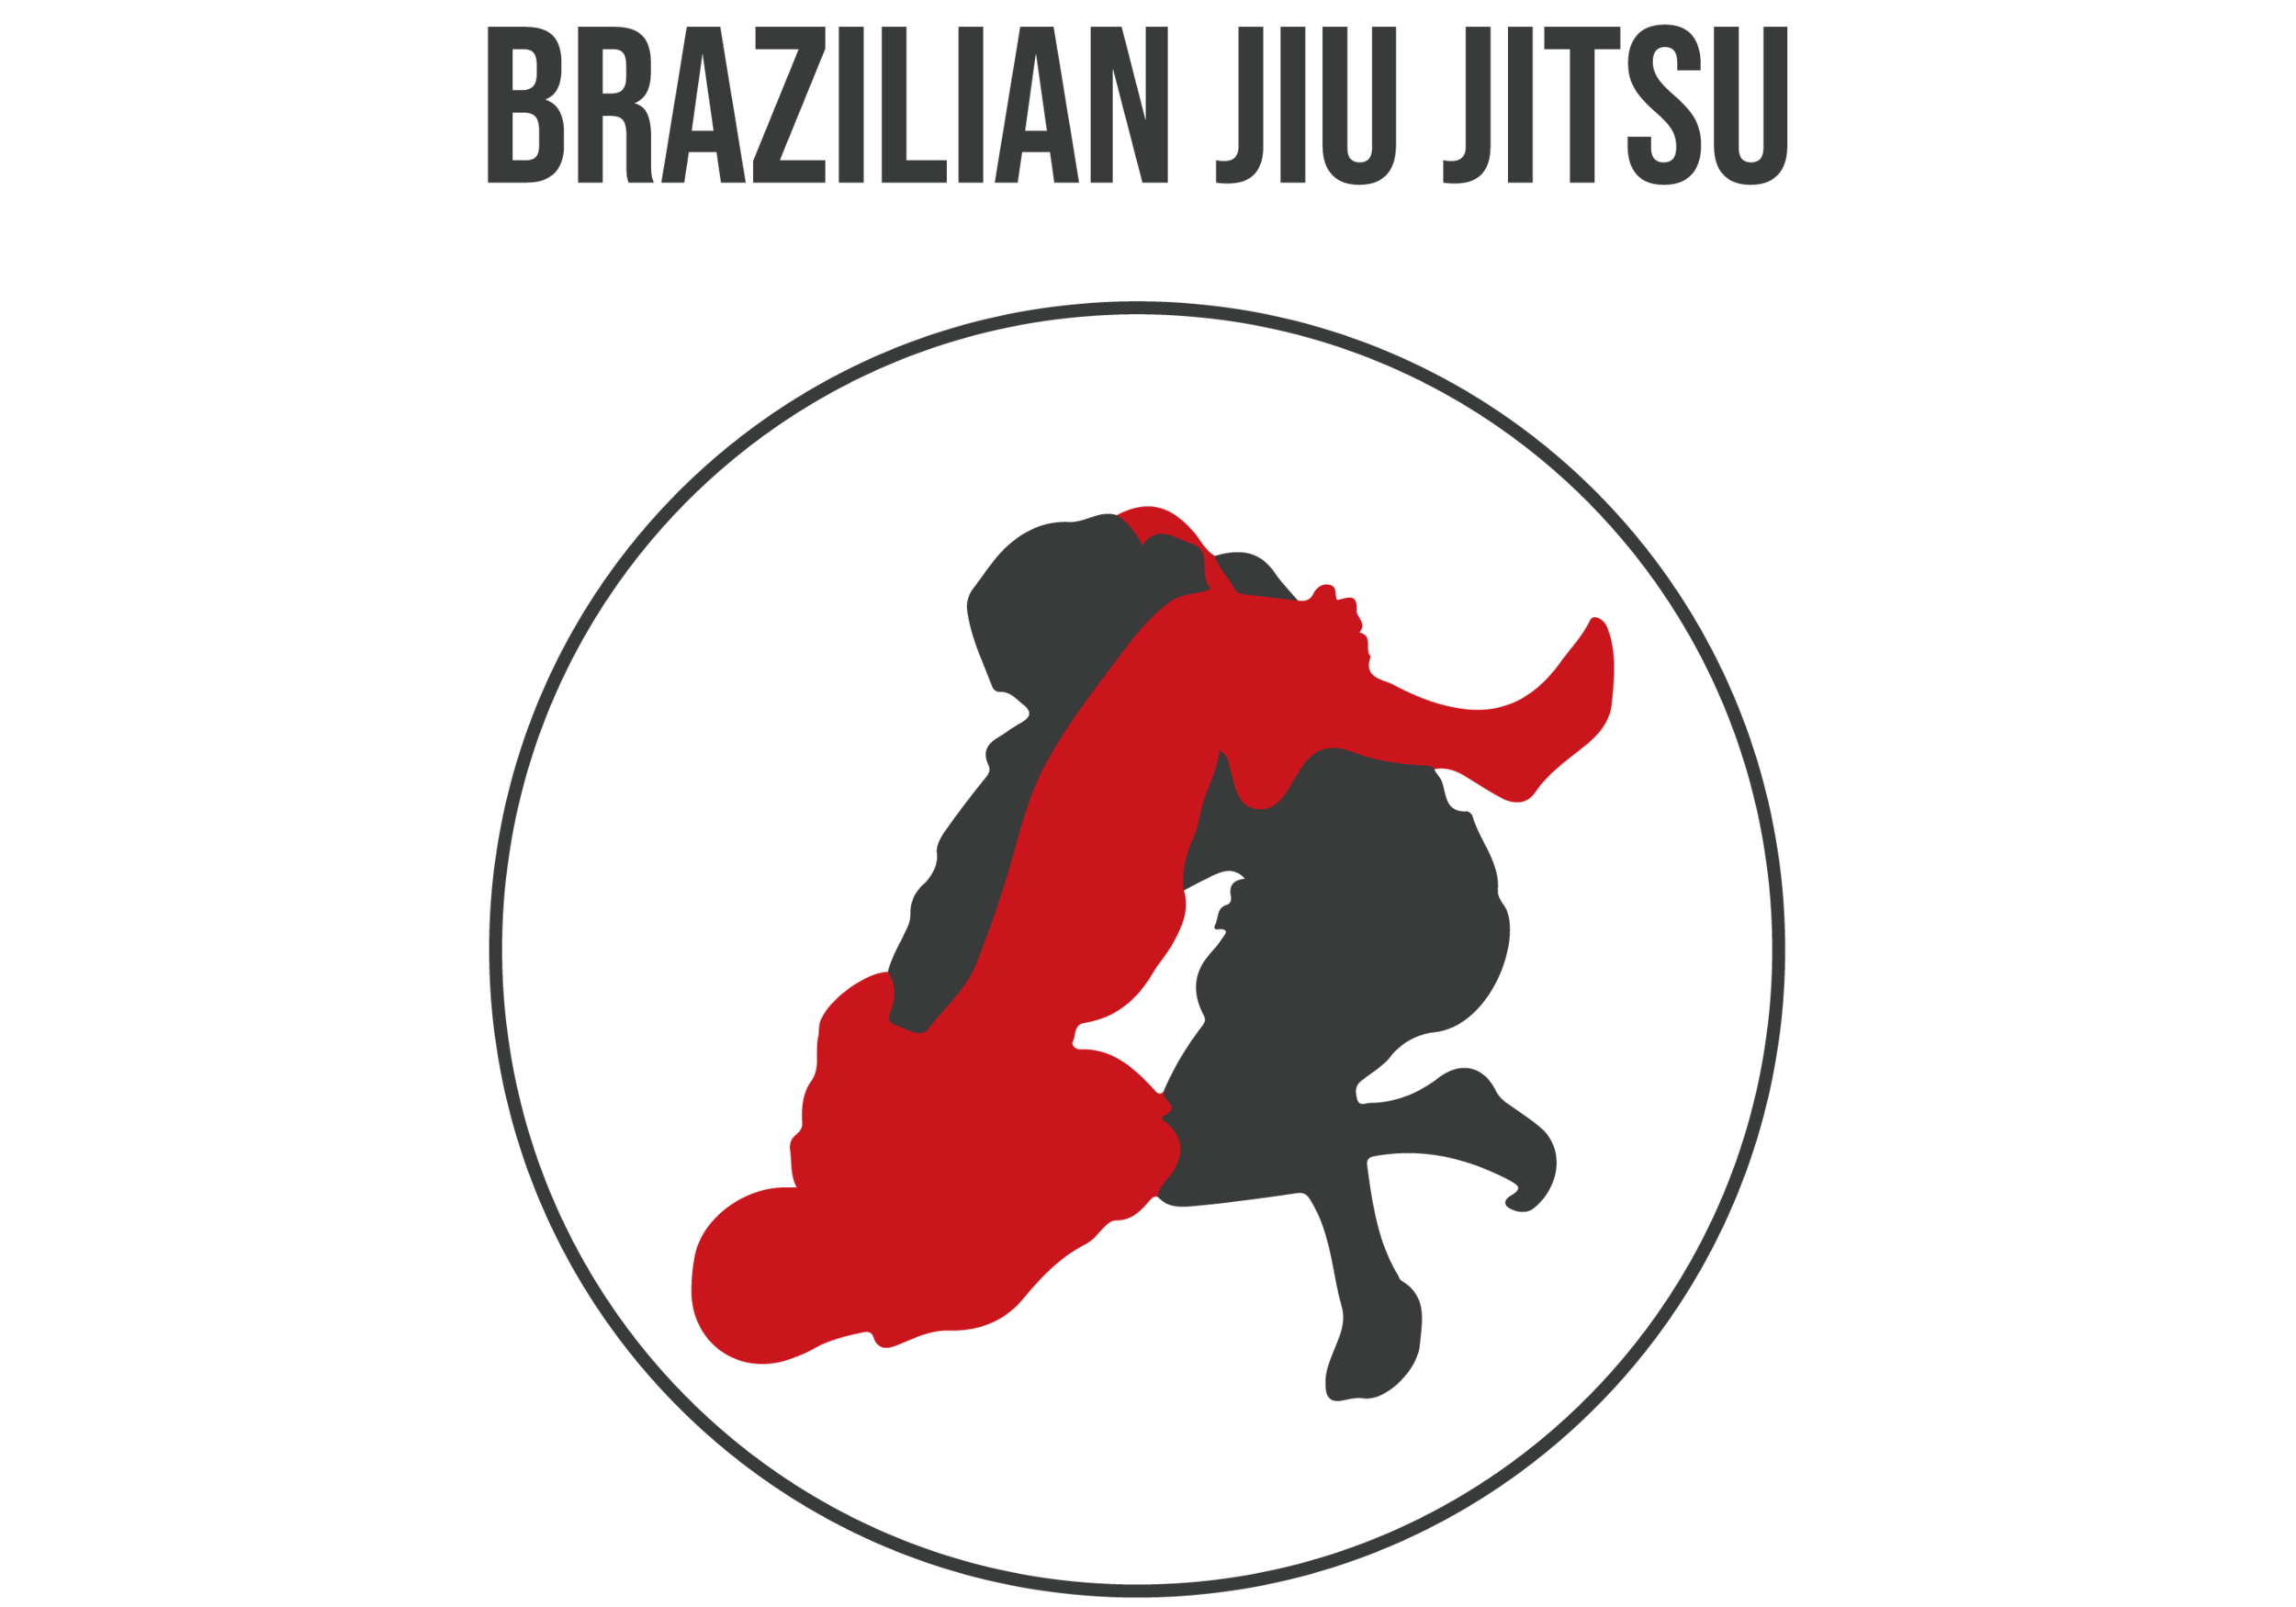 Copy of Brazilian Jiu Jitsu